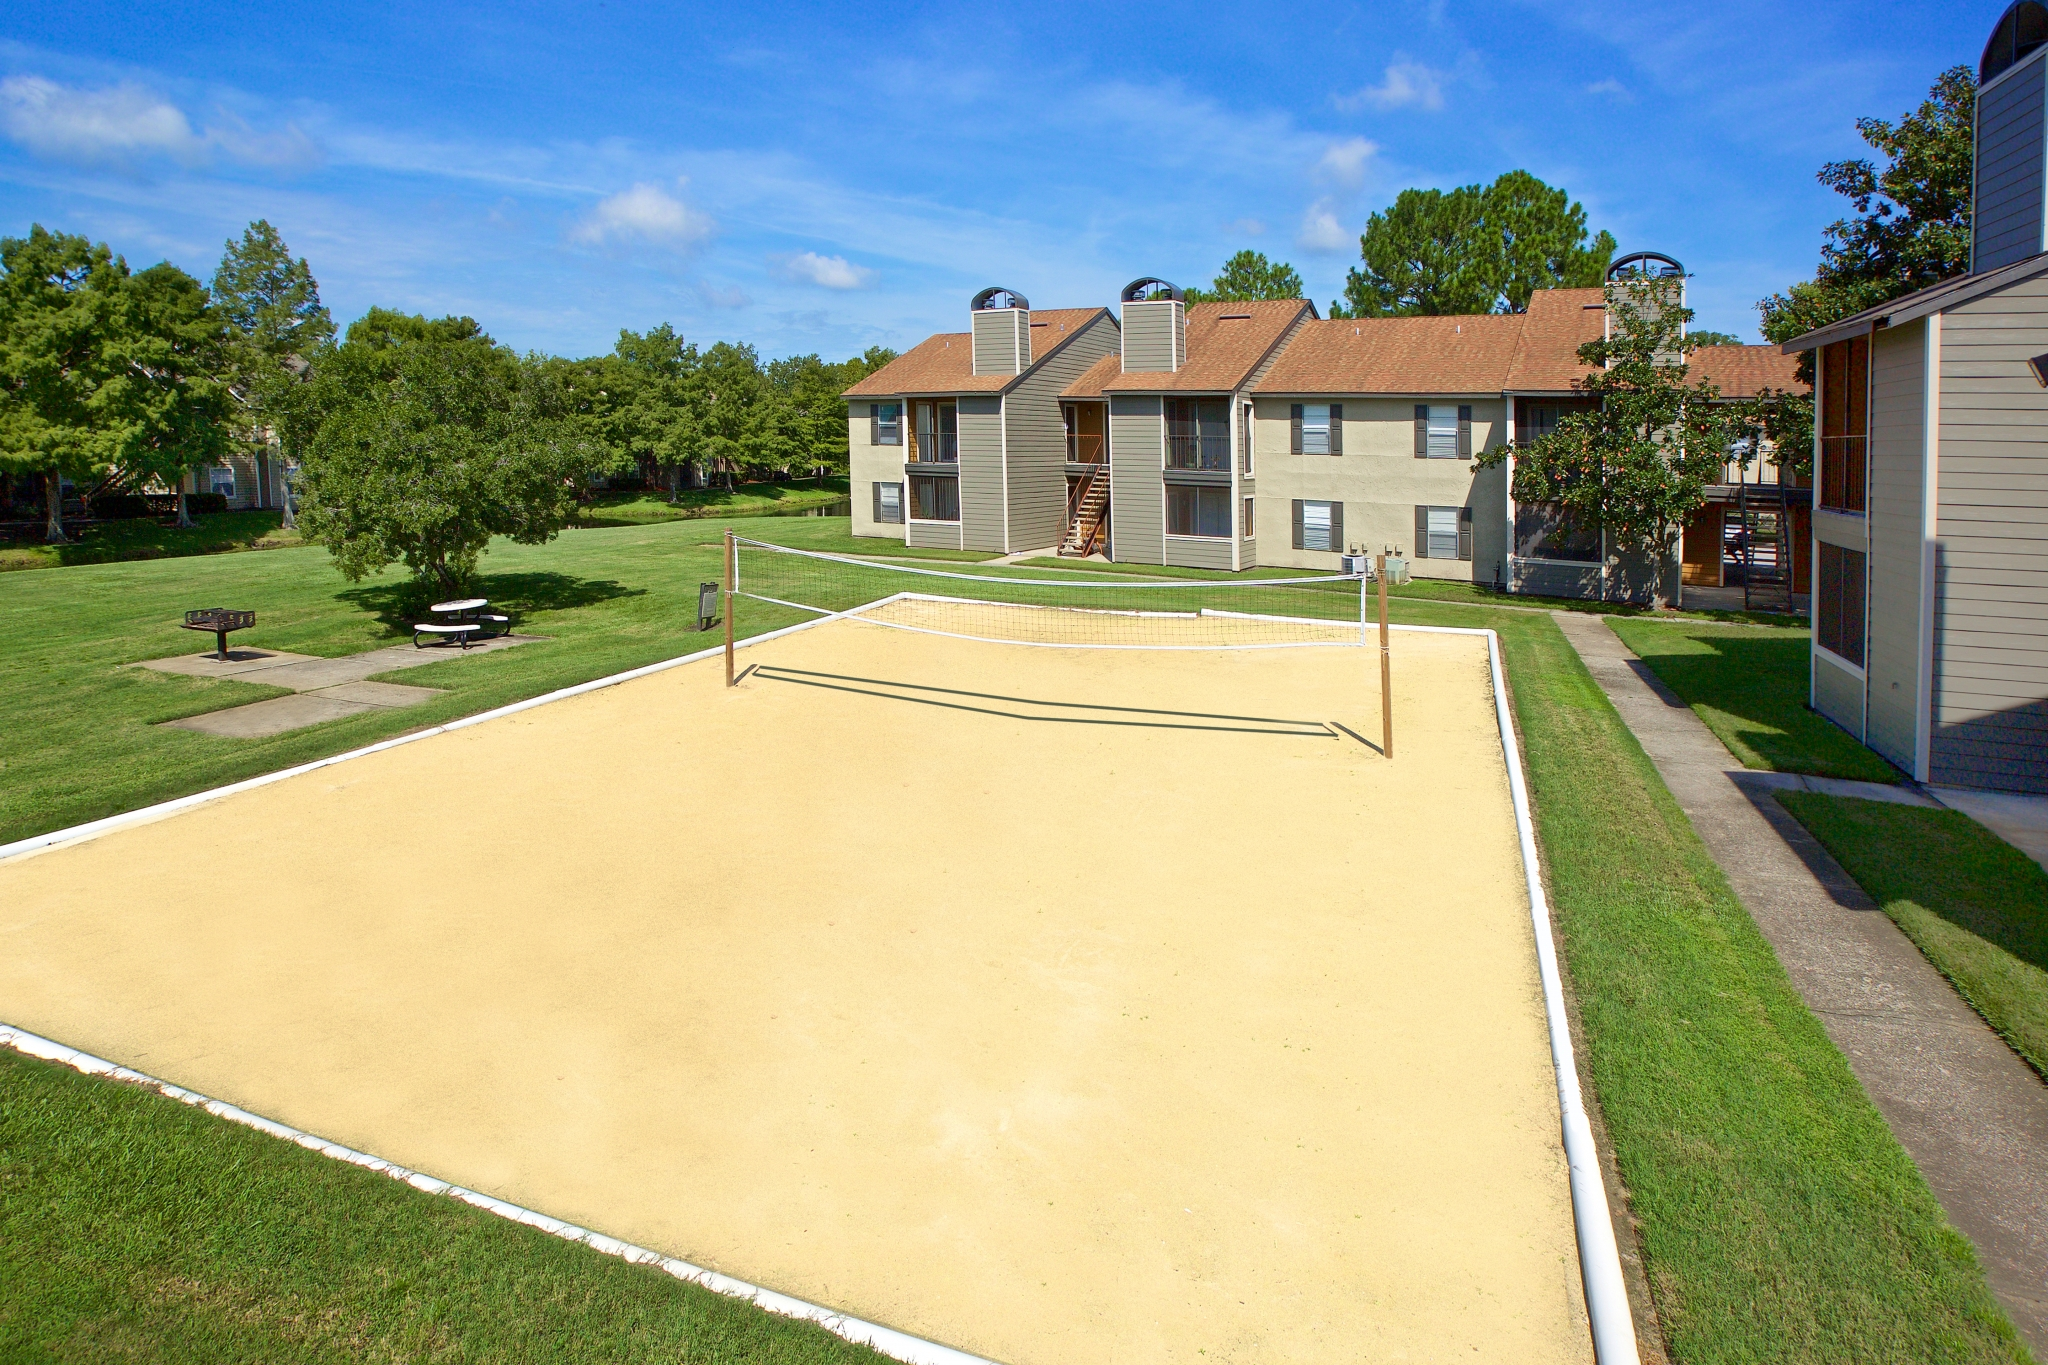 Bentley Green | Apartments for Rent Jacksonville, Florida | Sand Volleyball Court